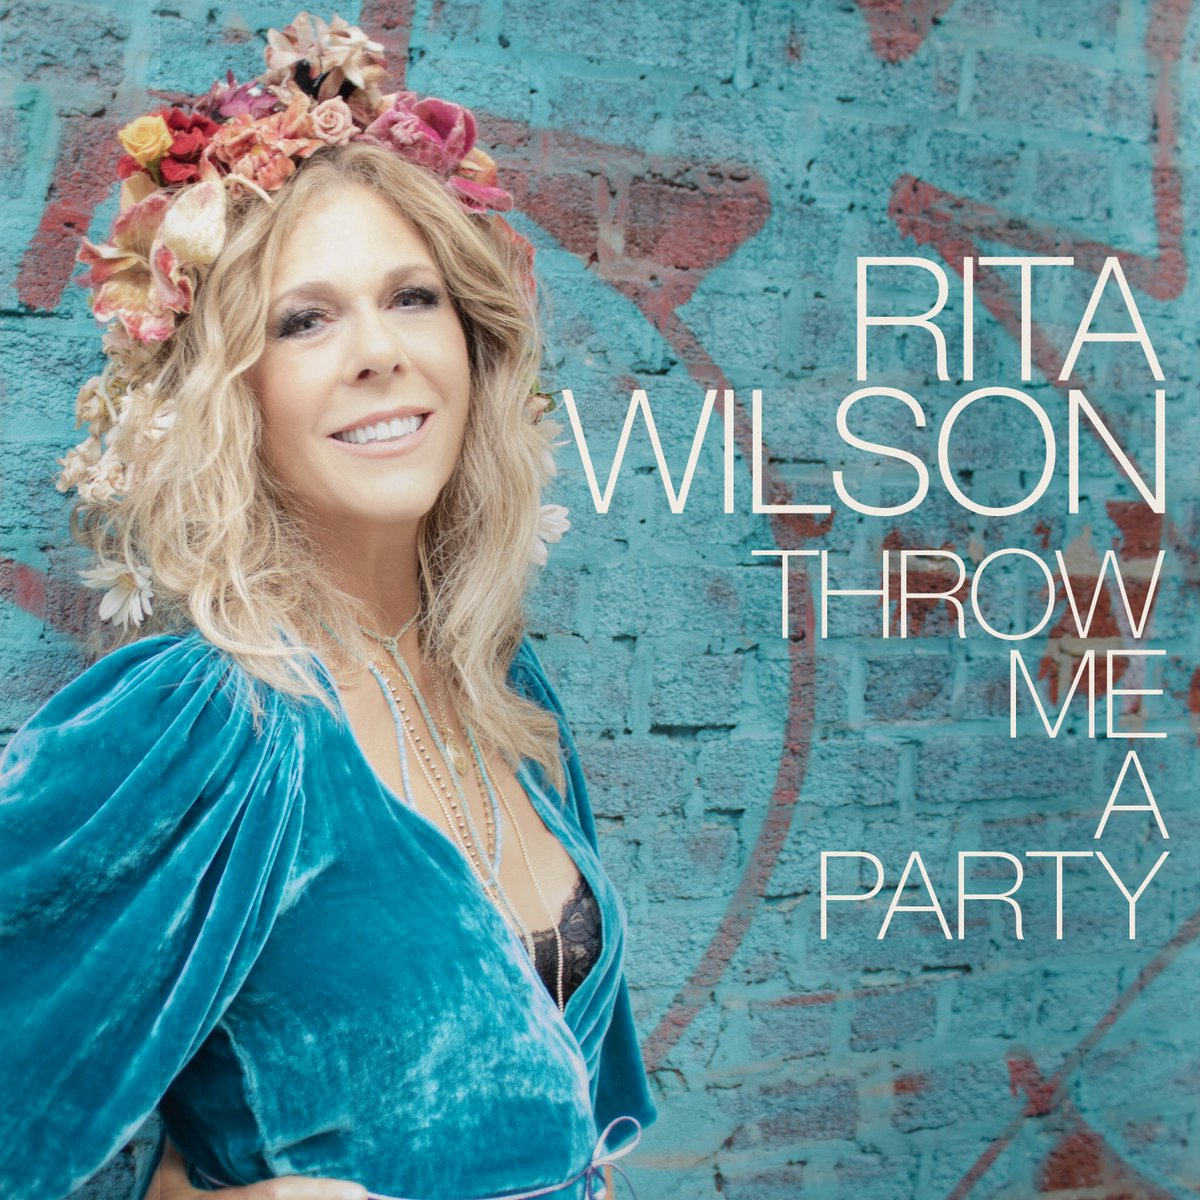 Big day in the family! New music for the world @ritawilson. Hanx https://t.co/sK5iRHPluq https://t.co/wcgjhl3J6P